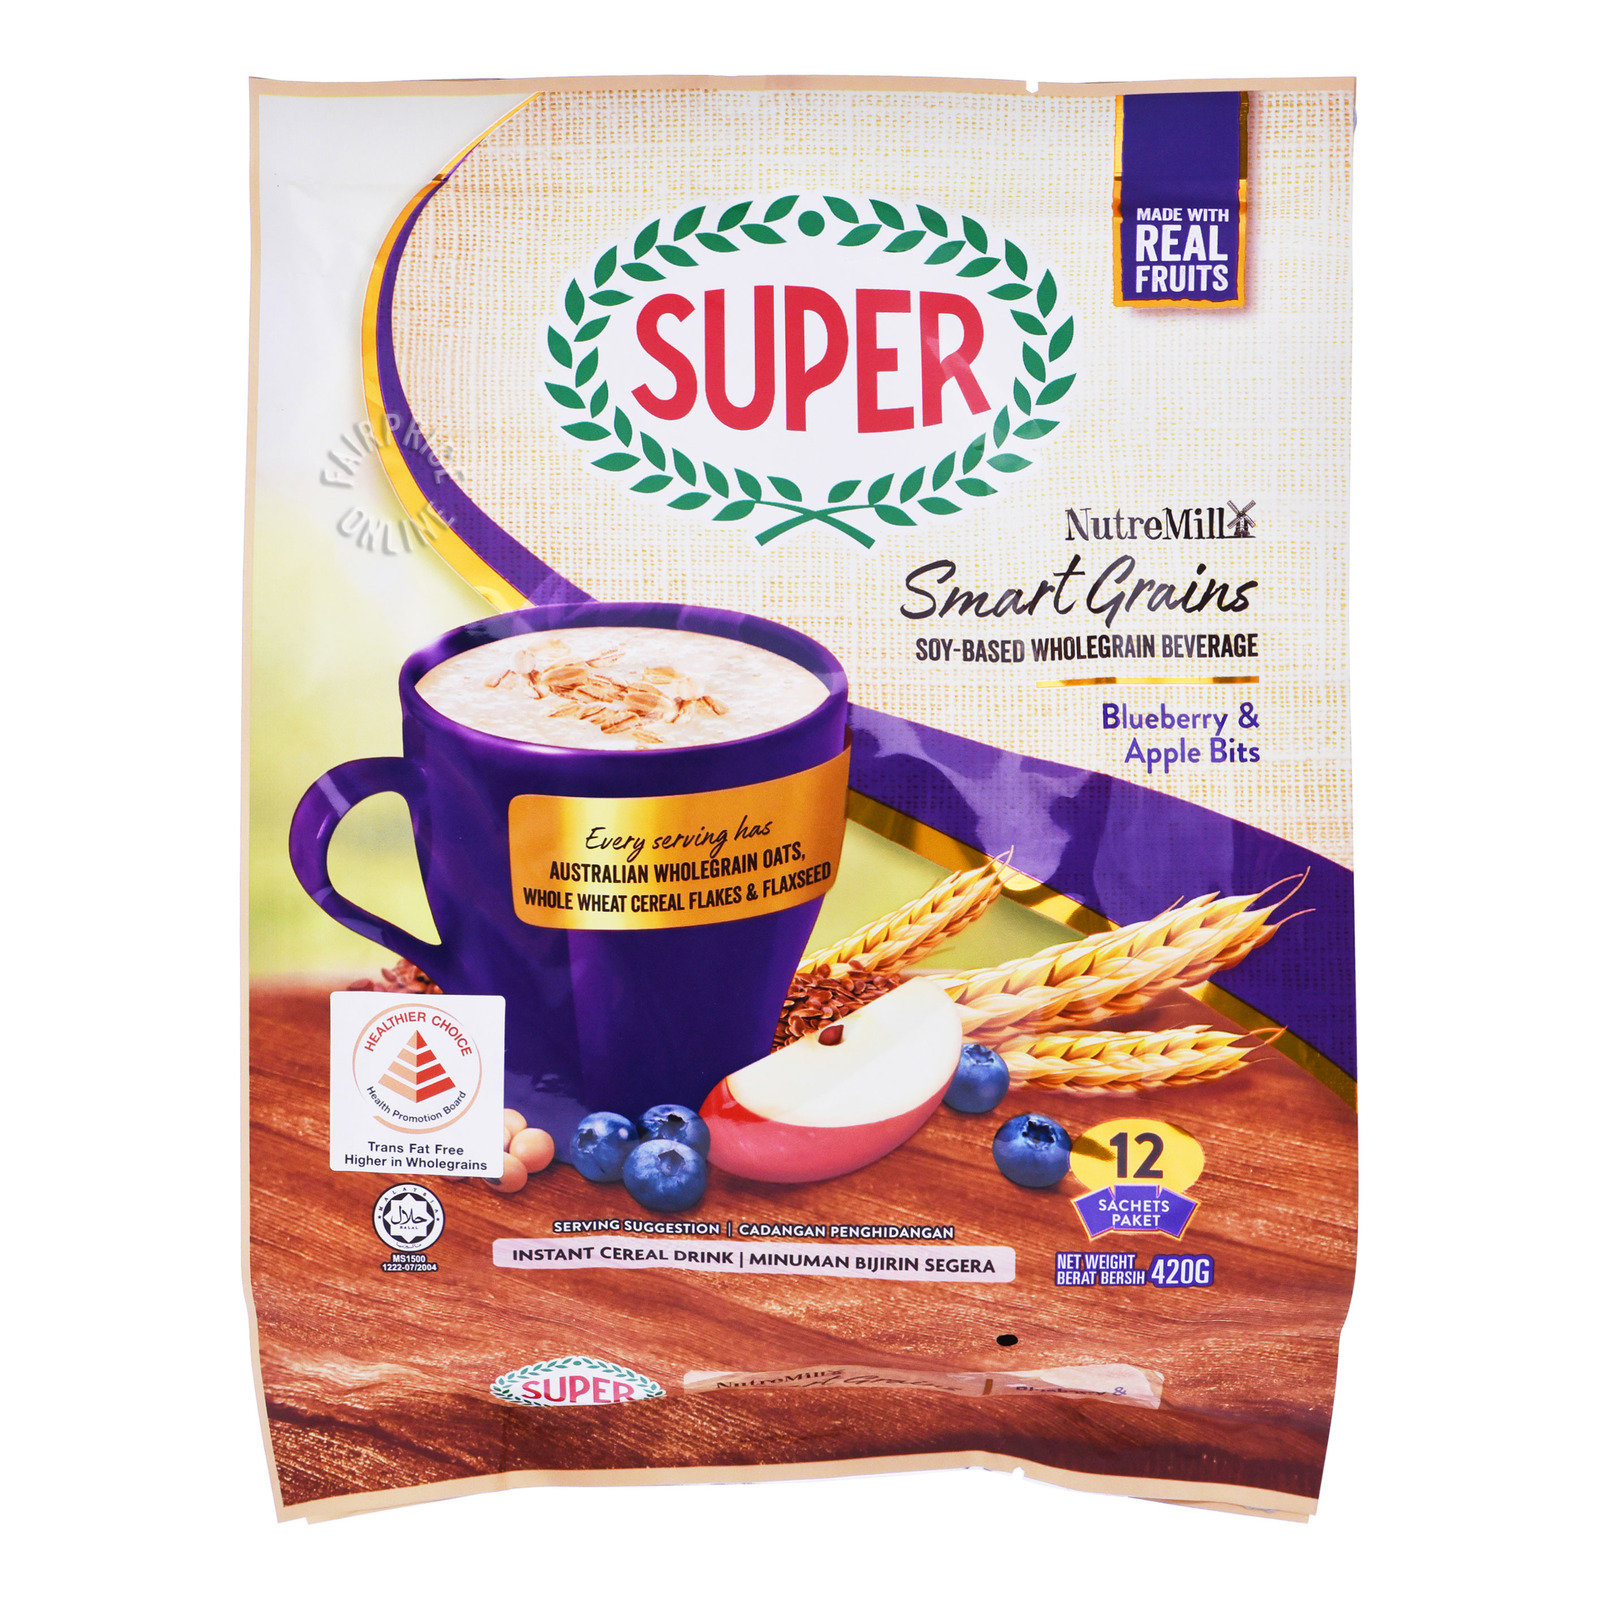 SUPER Instant Soy Drink Whole Grain NutreMill - Blueberry & Apple Bits 12sX35g